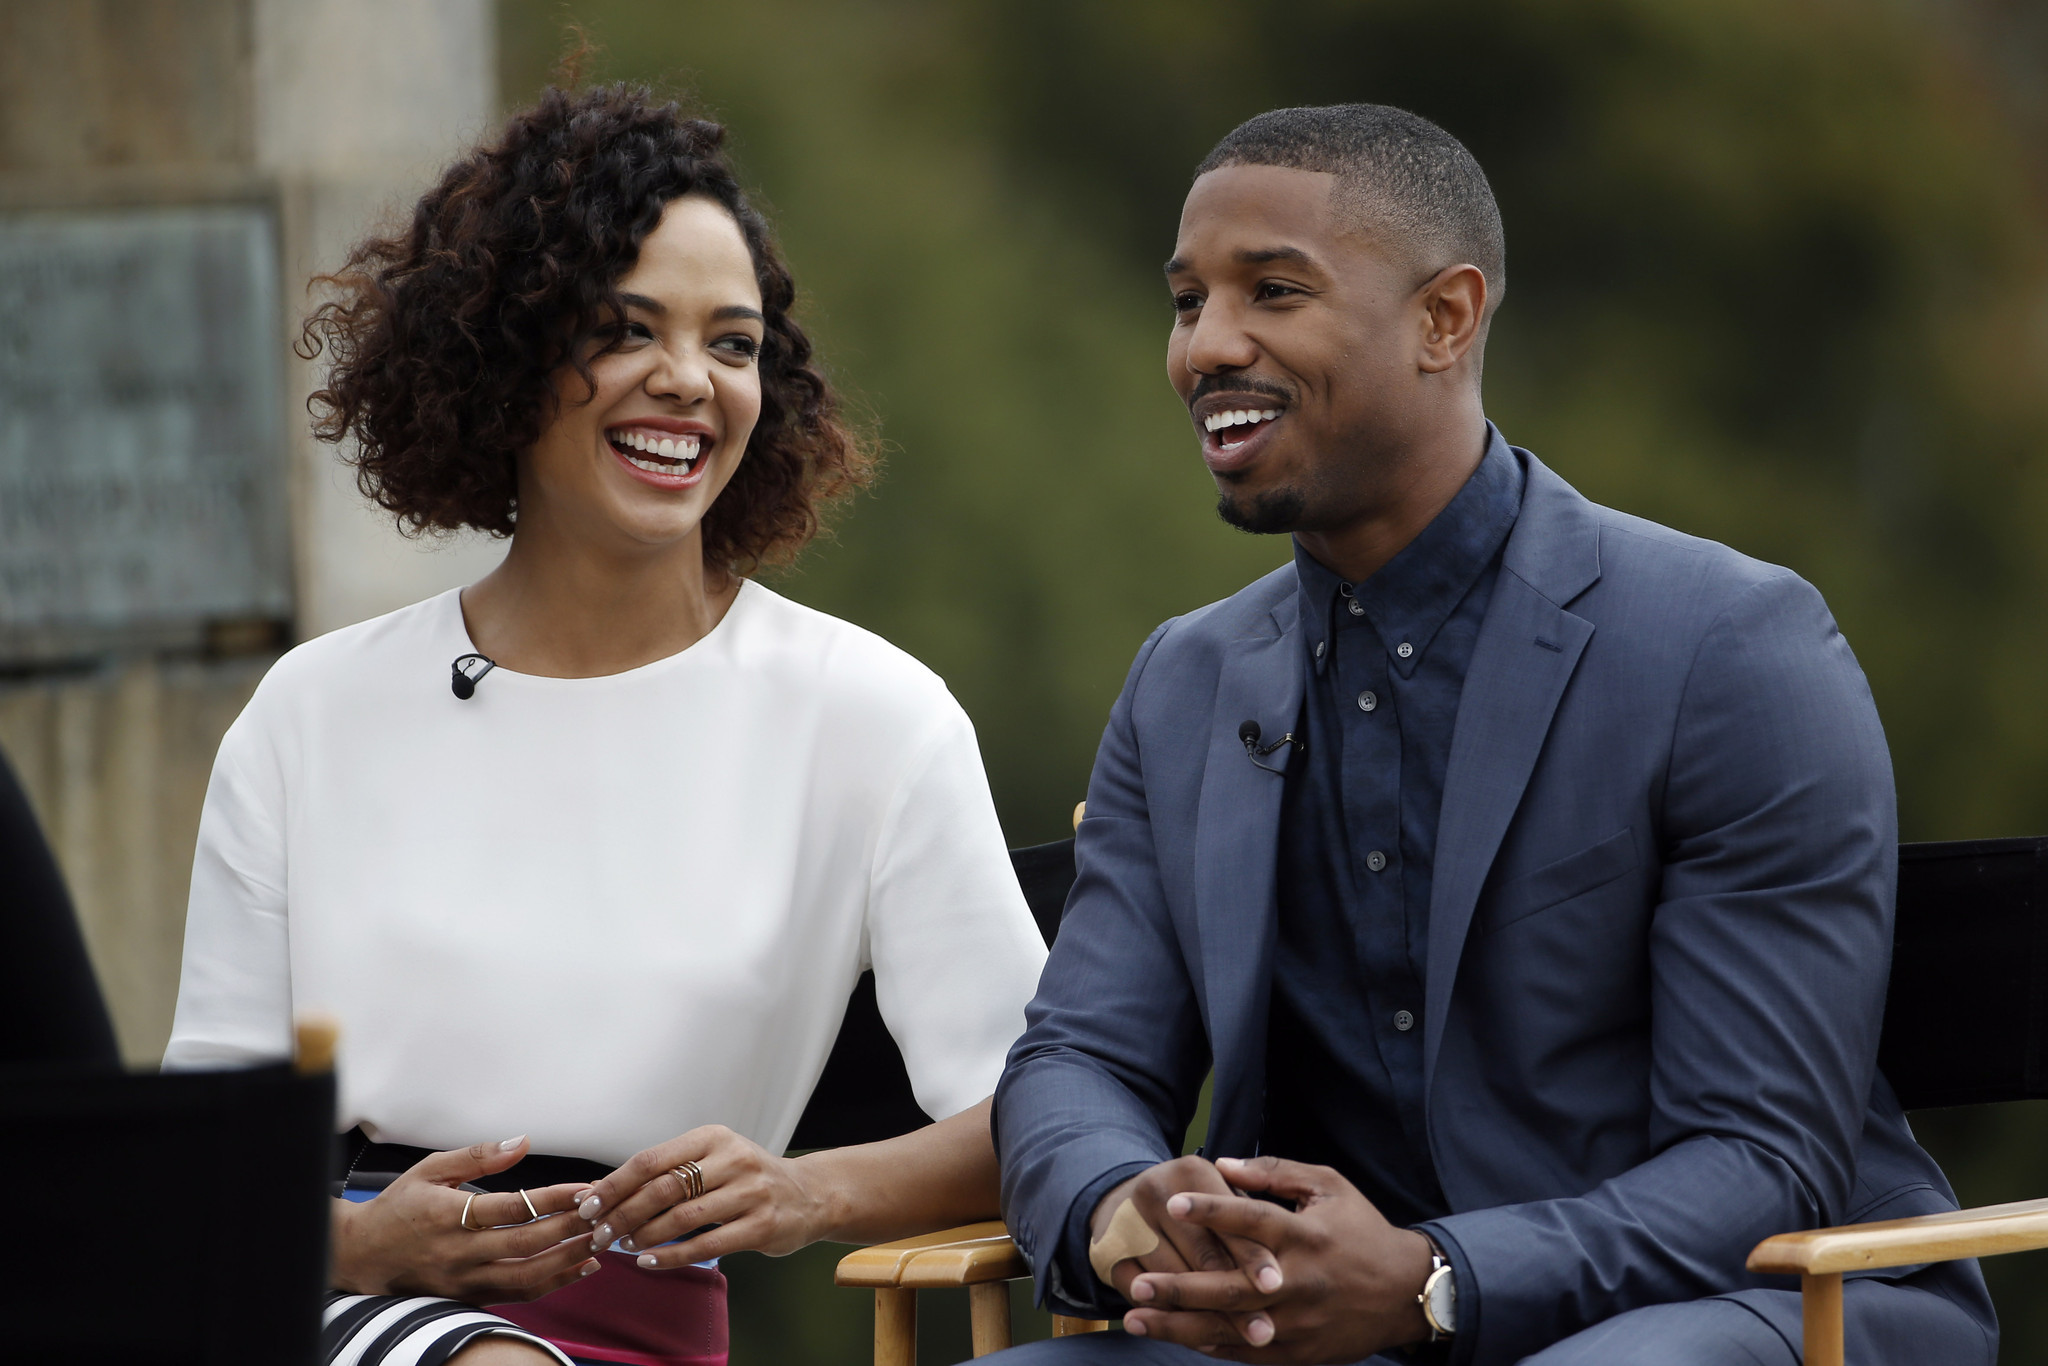 creed star proudly plays hearing impaired character chicago tribune